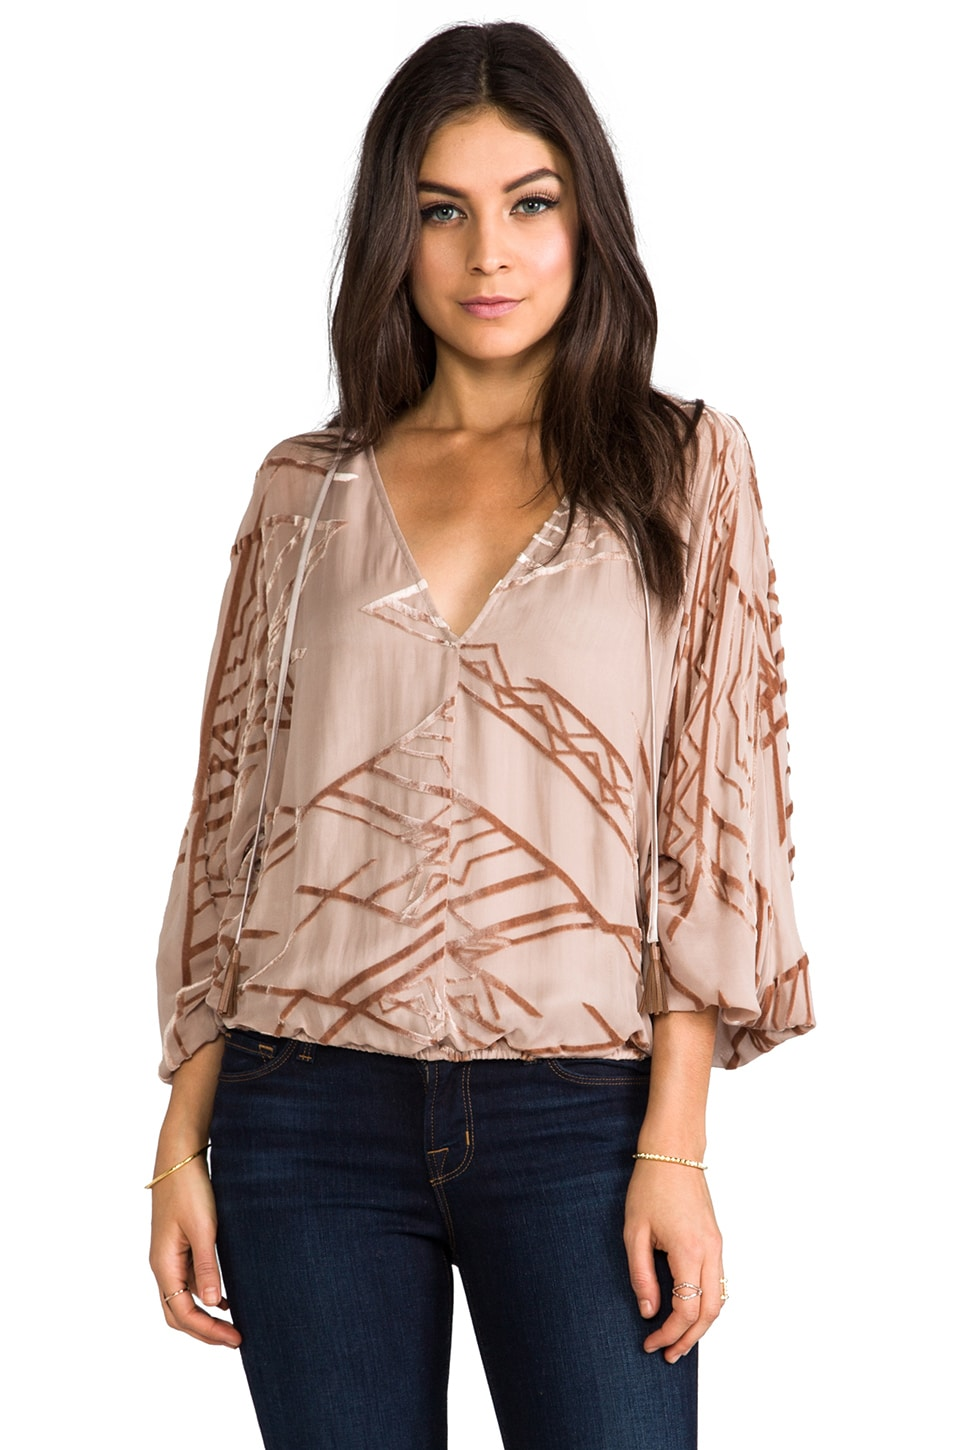 Twelfth Street By Cynthia Vincent Dolman Tie Front Blouse in Champagne